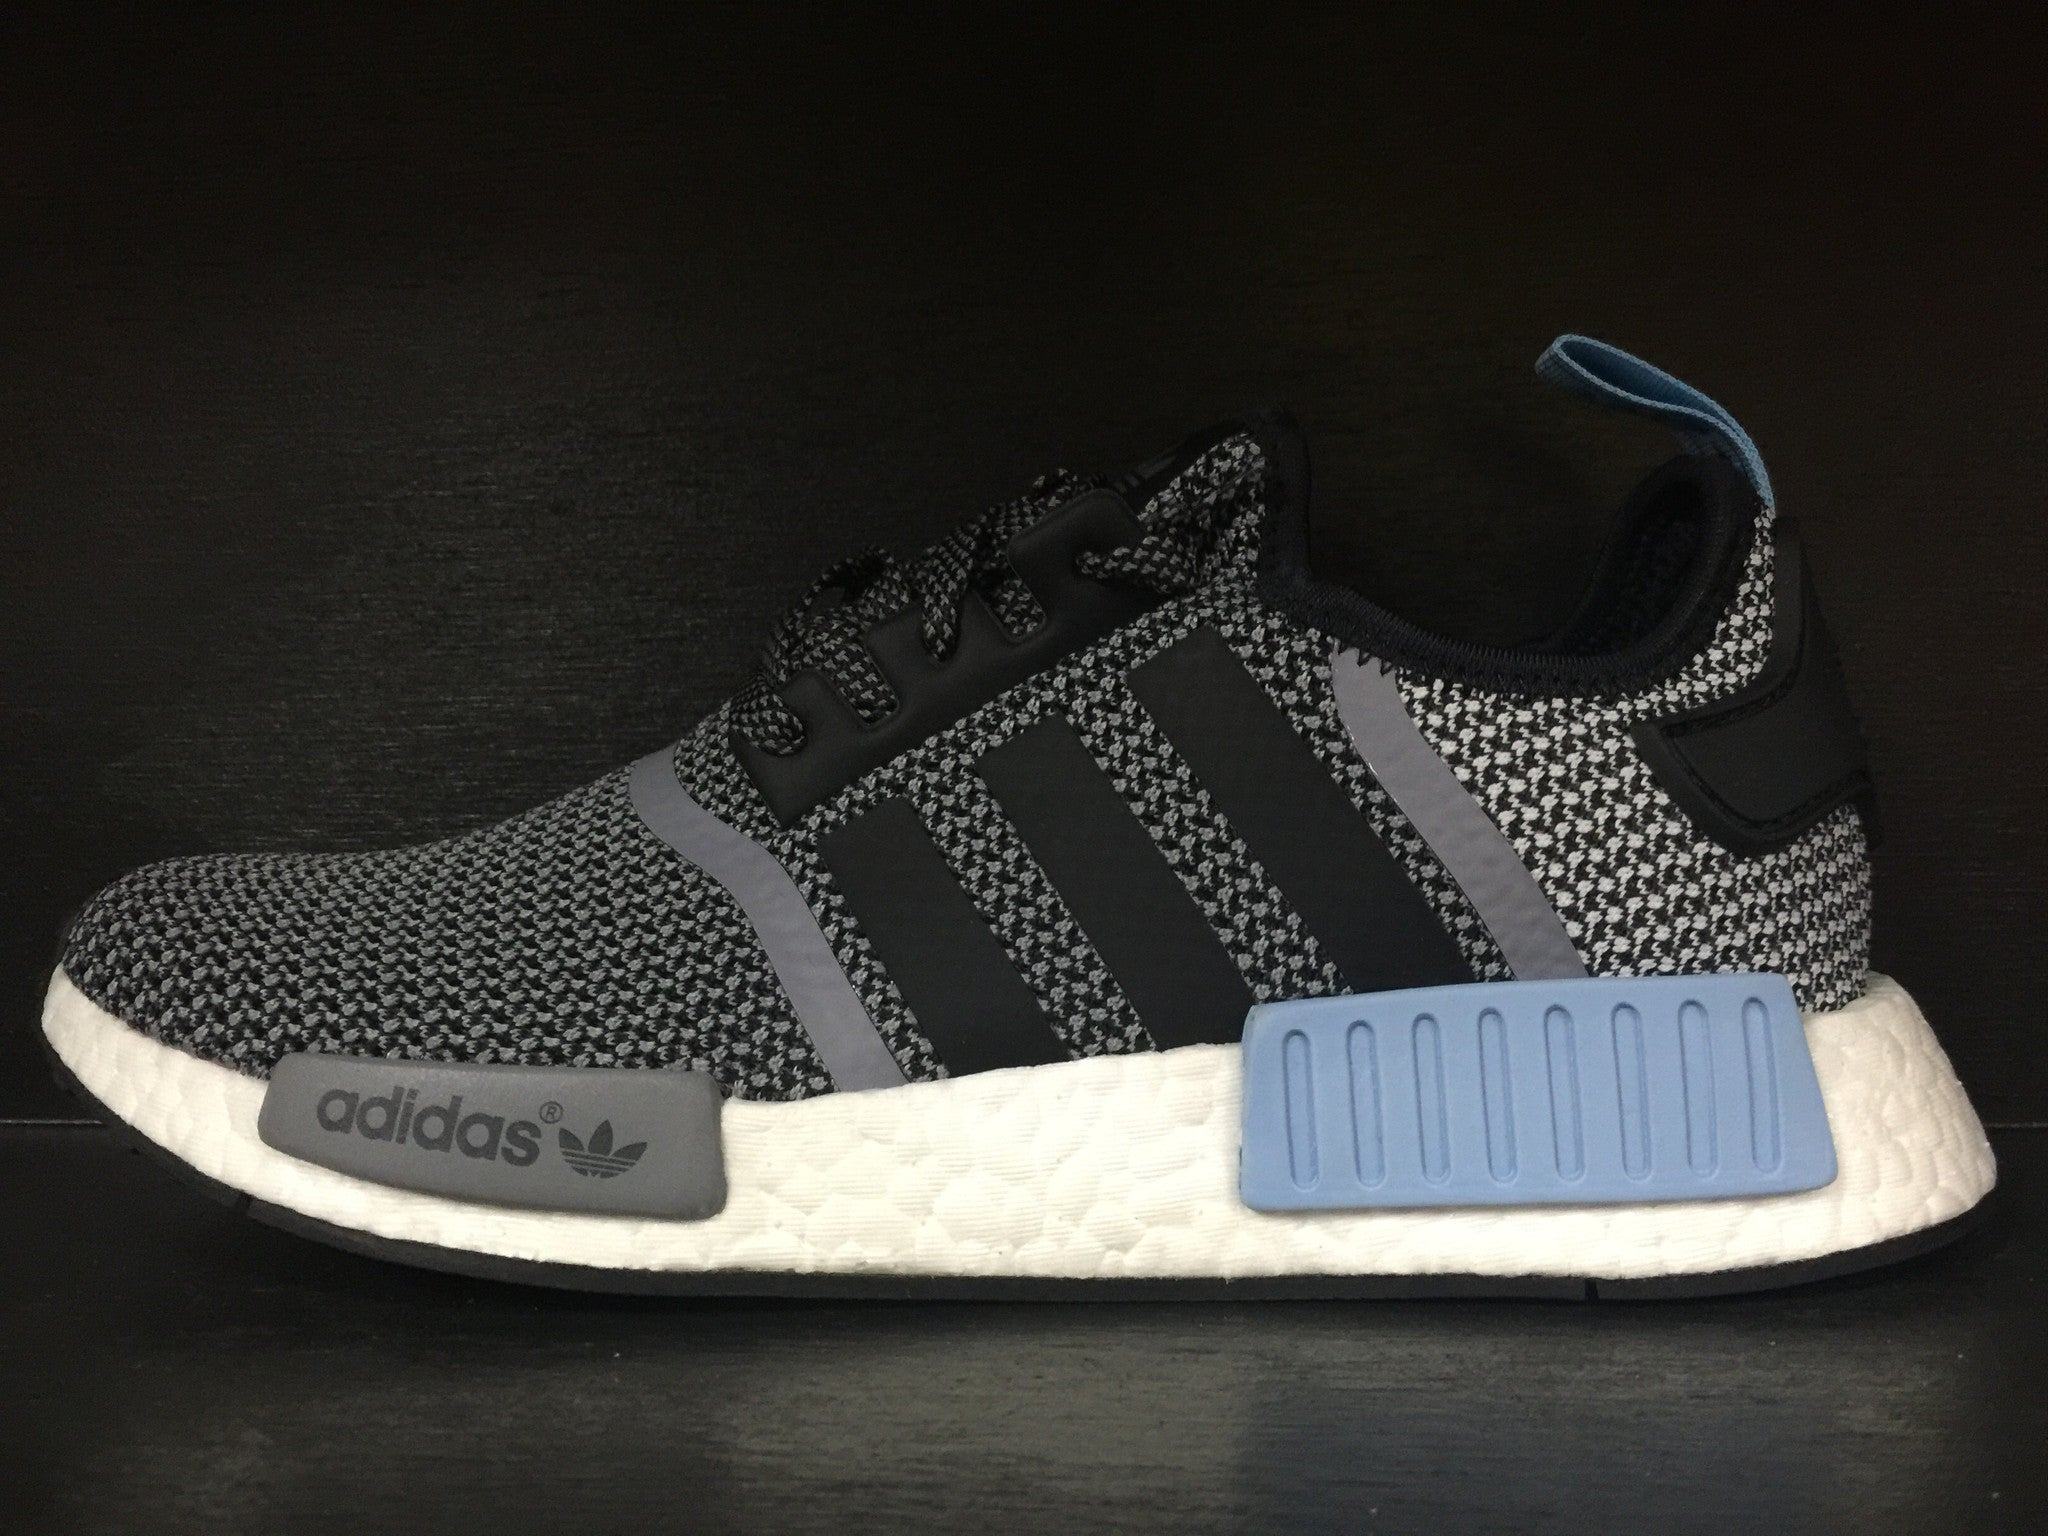 Adidas NMD R1 'Clear Blue'